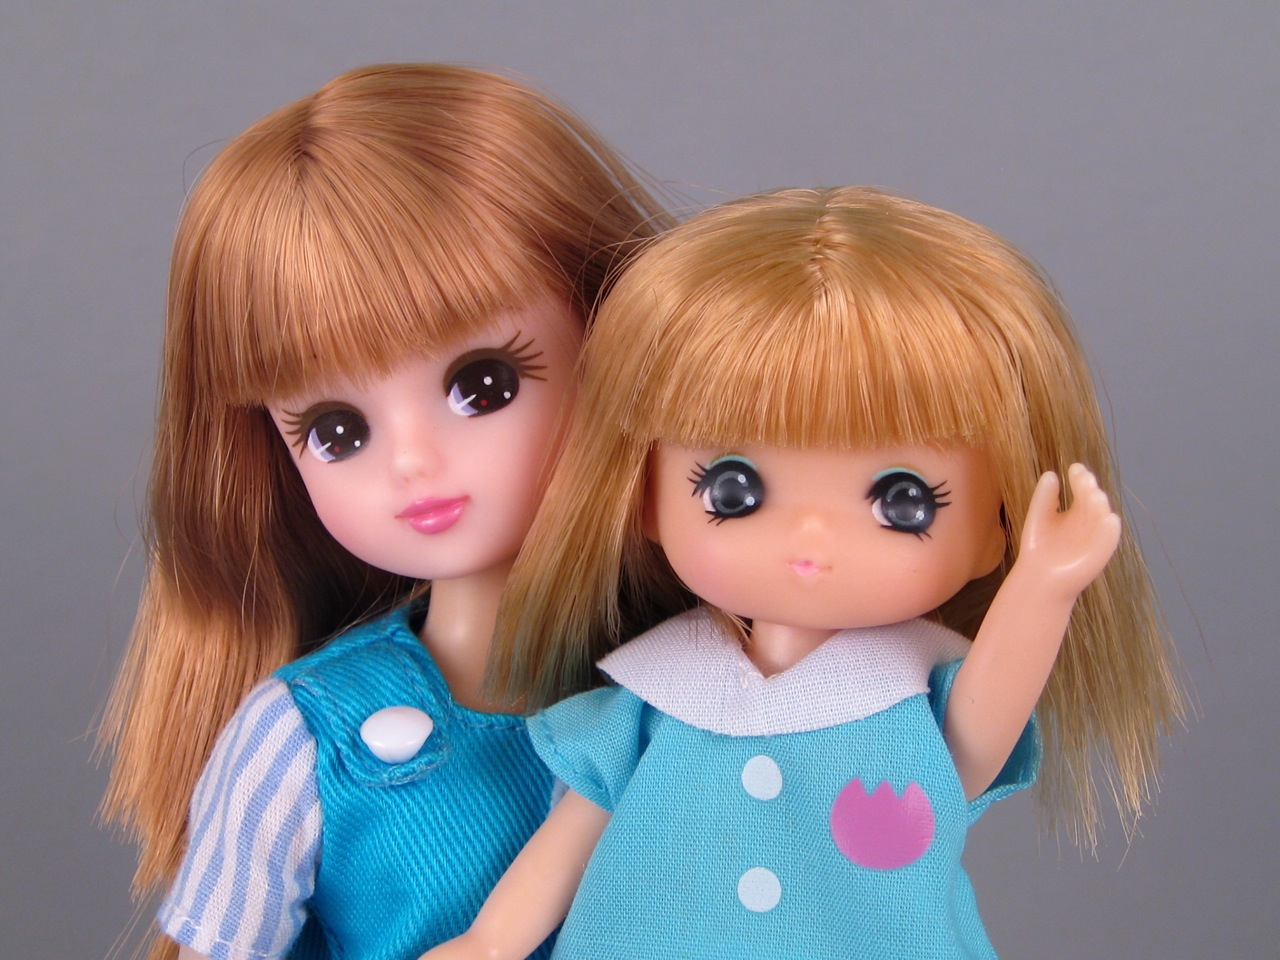 Licca-chan and Miki-chan